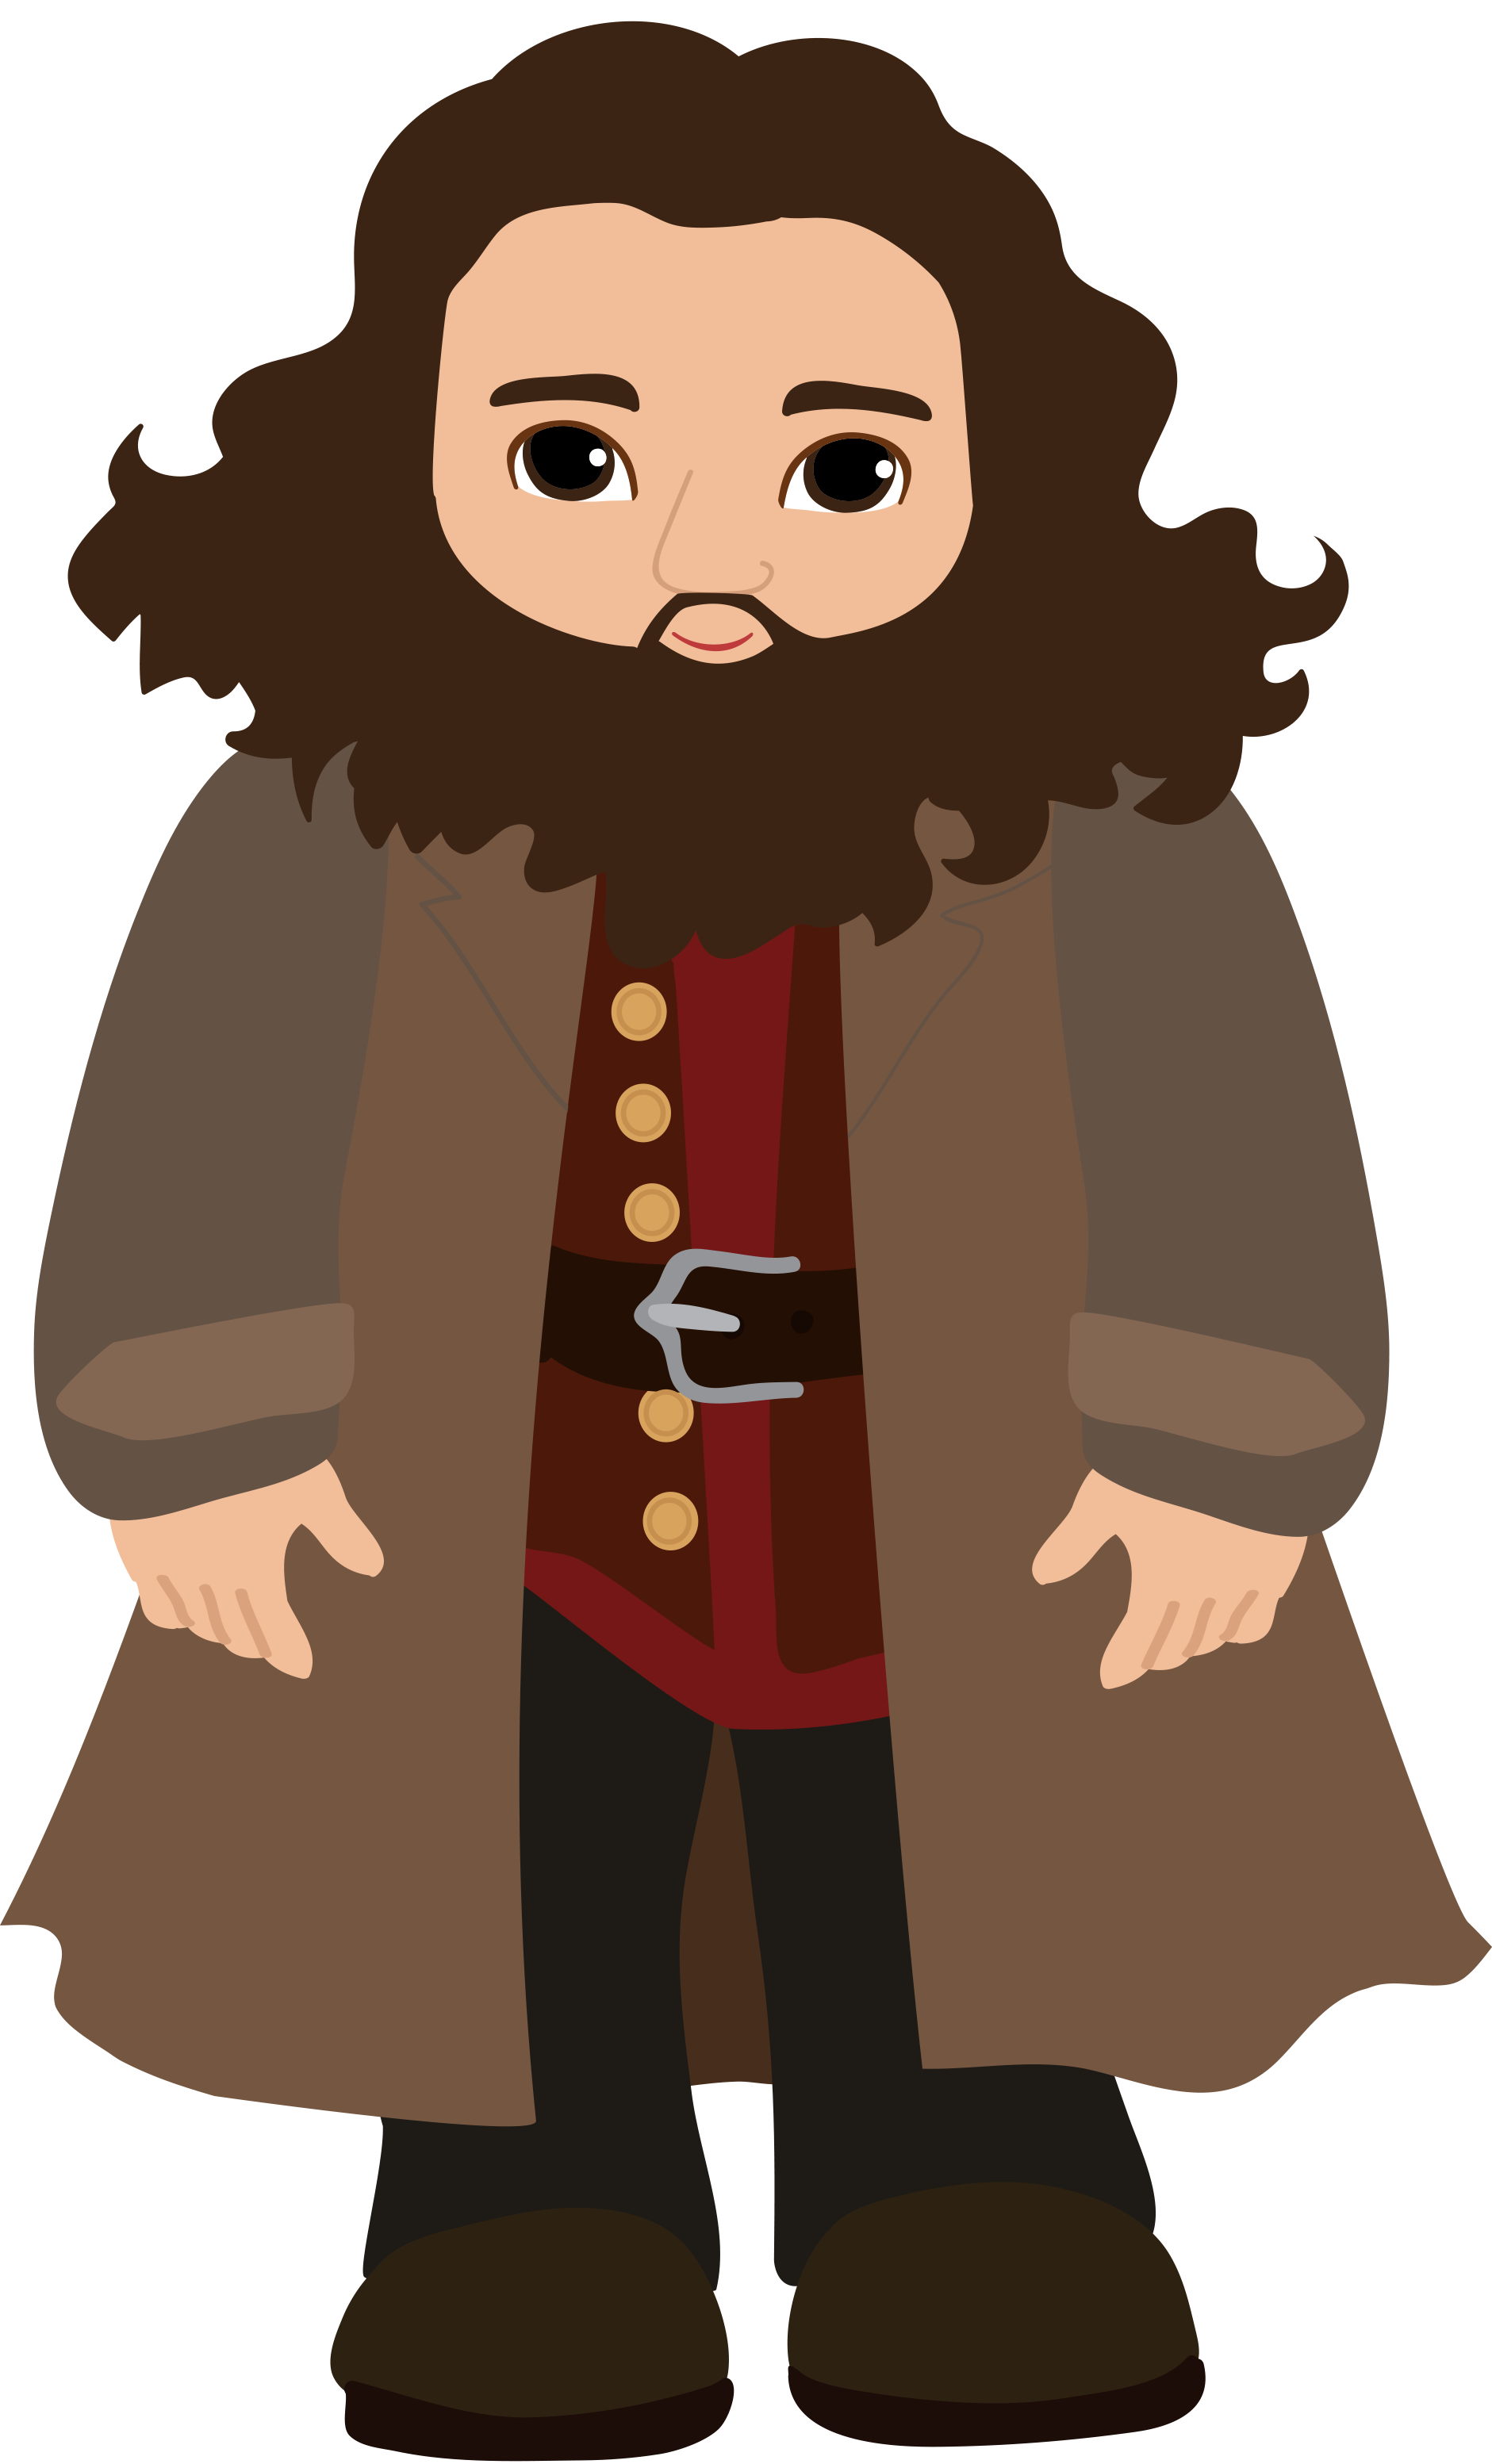 Clipart friends counter. Hagrid n stenka https